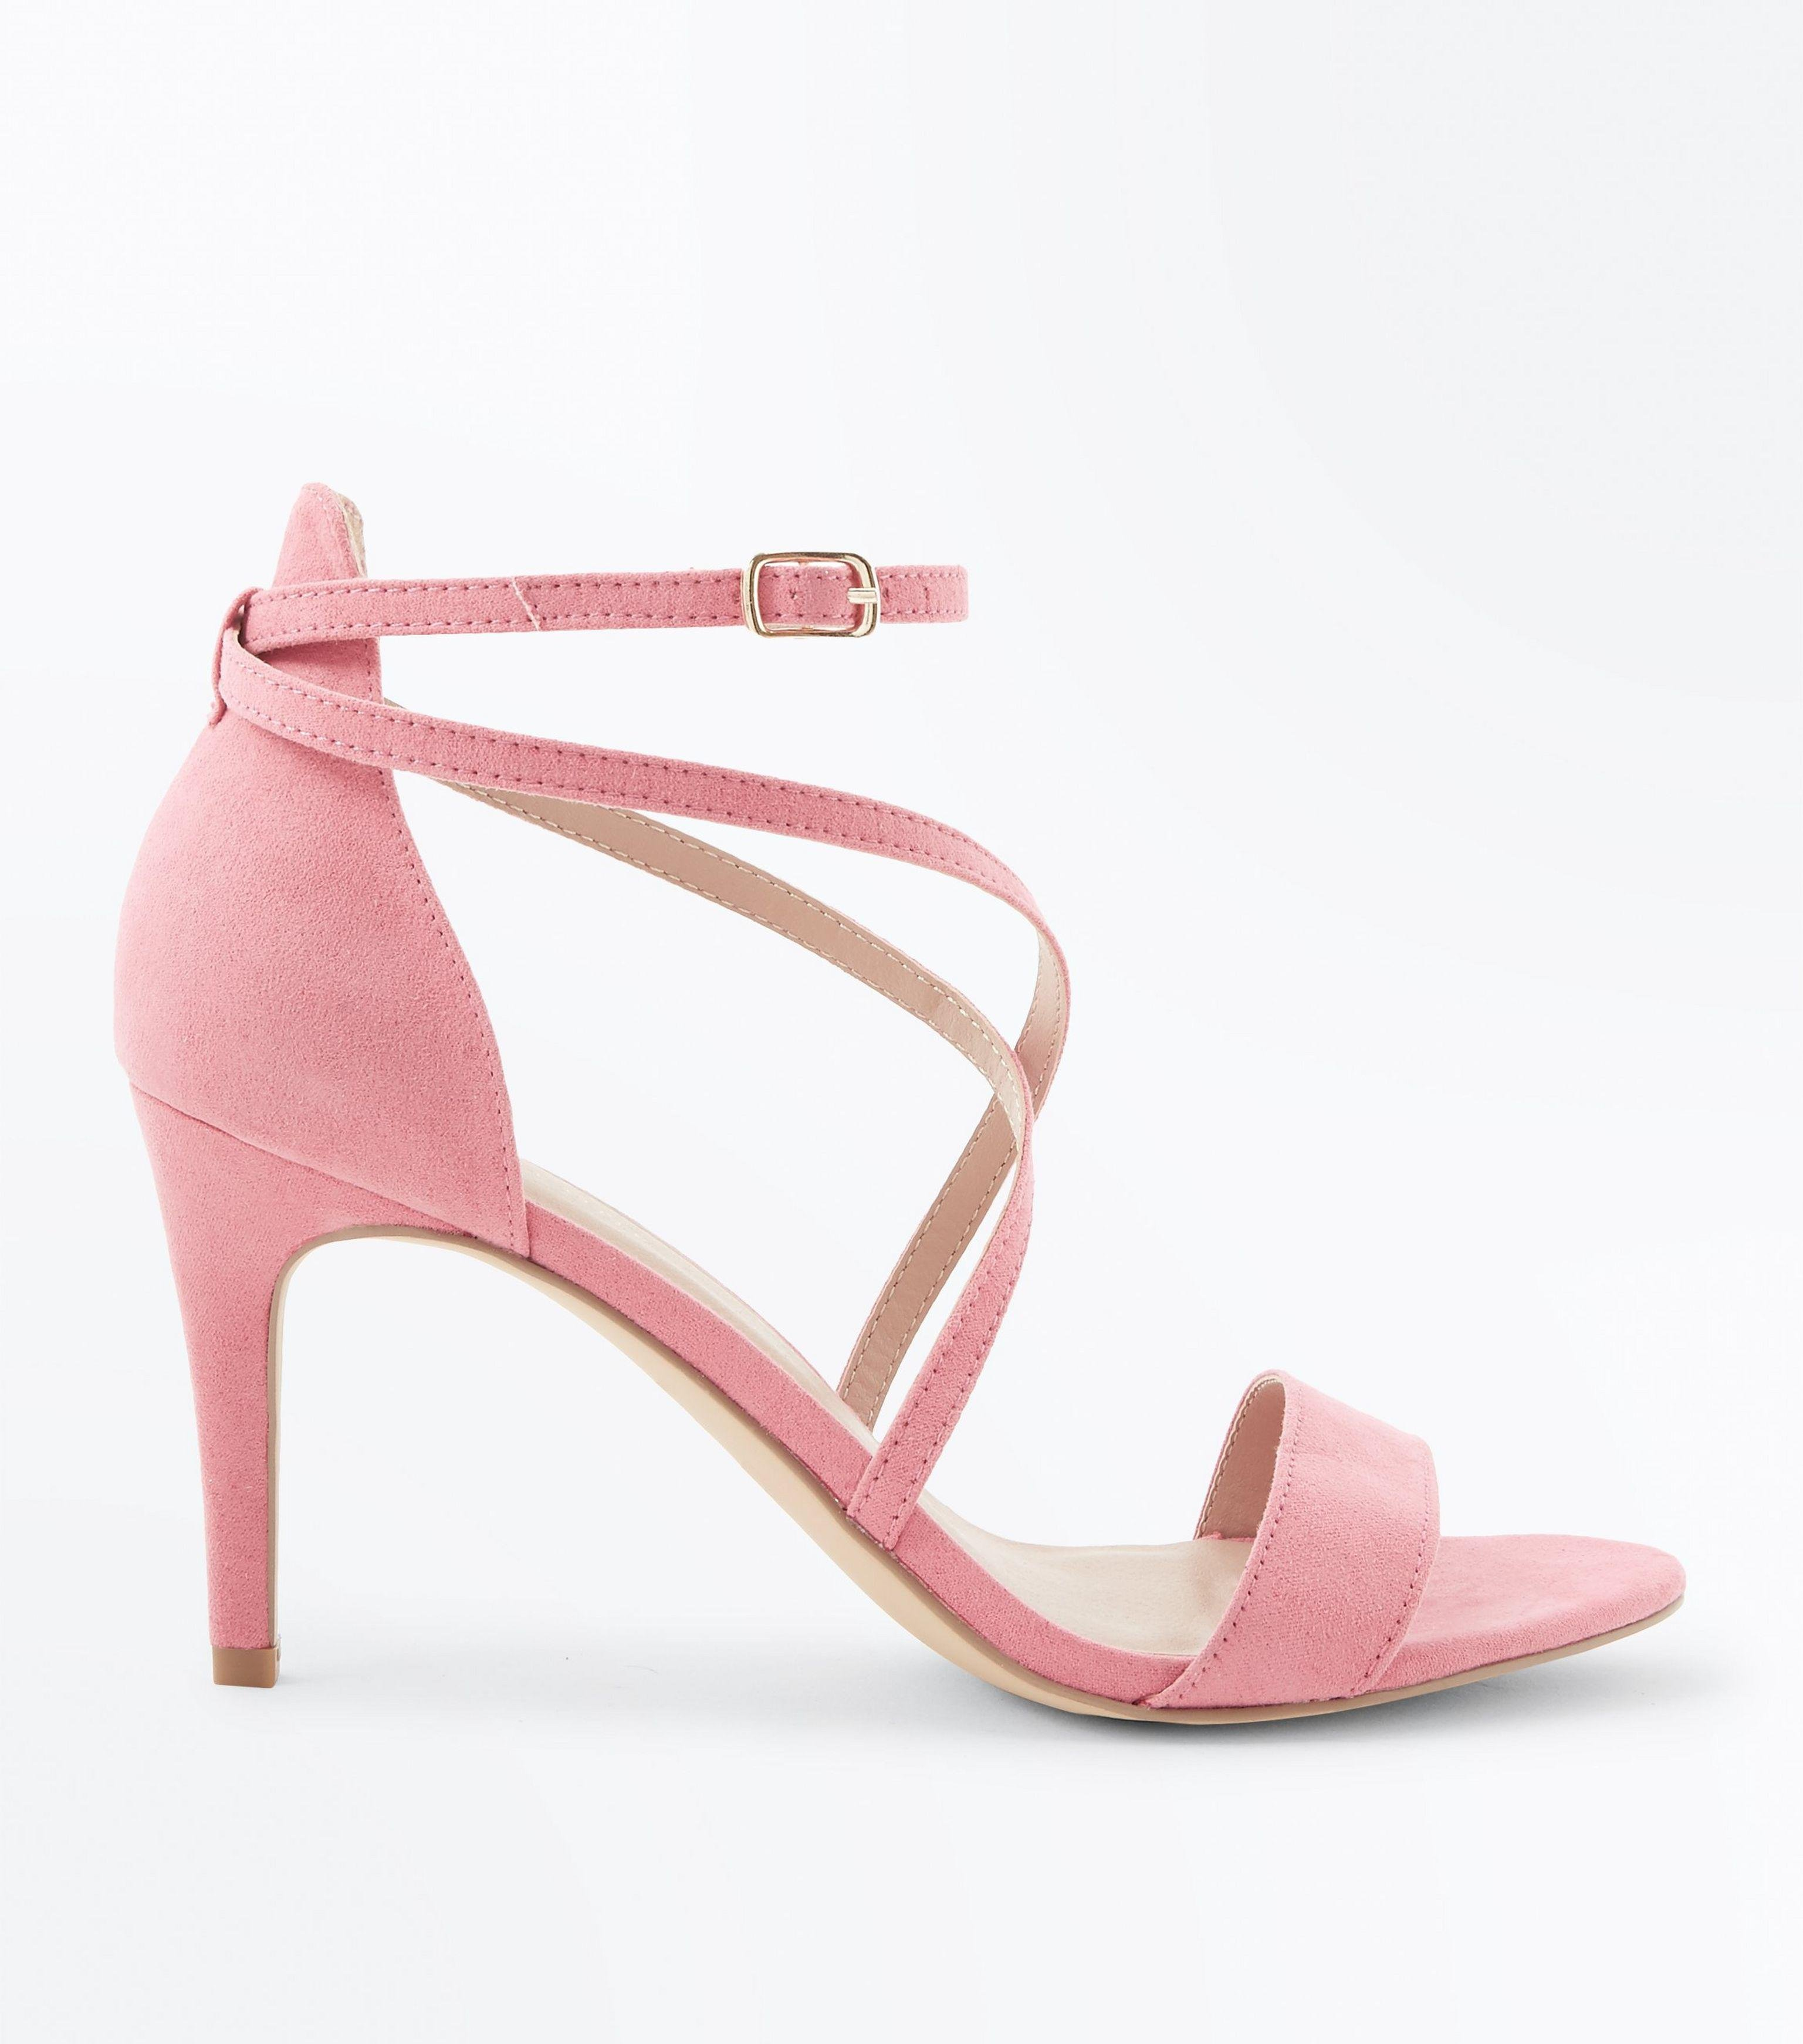 a3931346f826 New Look Bright Pink Suedette Strappy Stiletto Sandals in Pink - Lyst